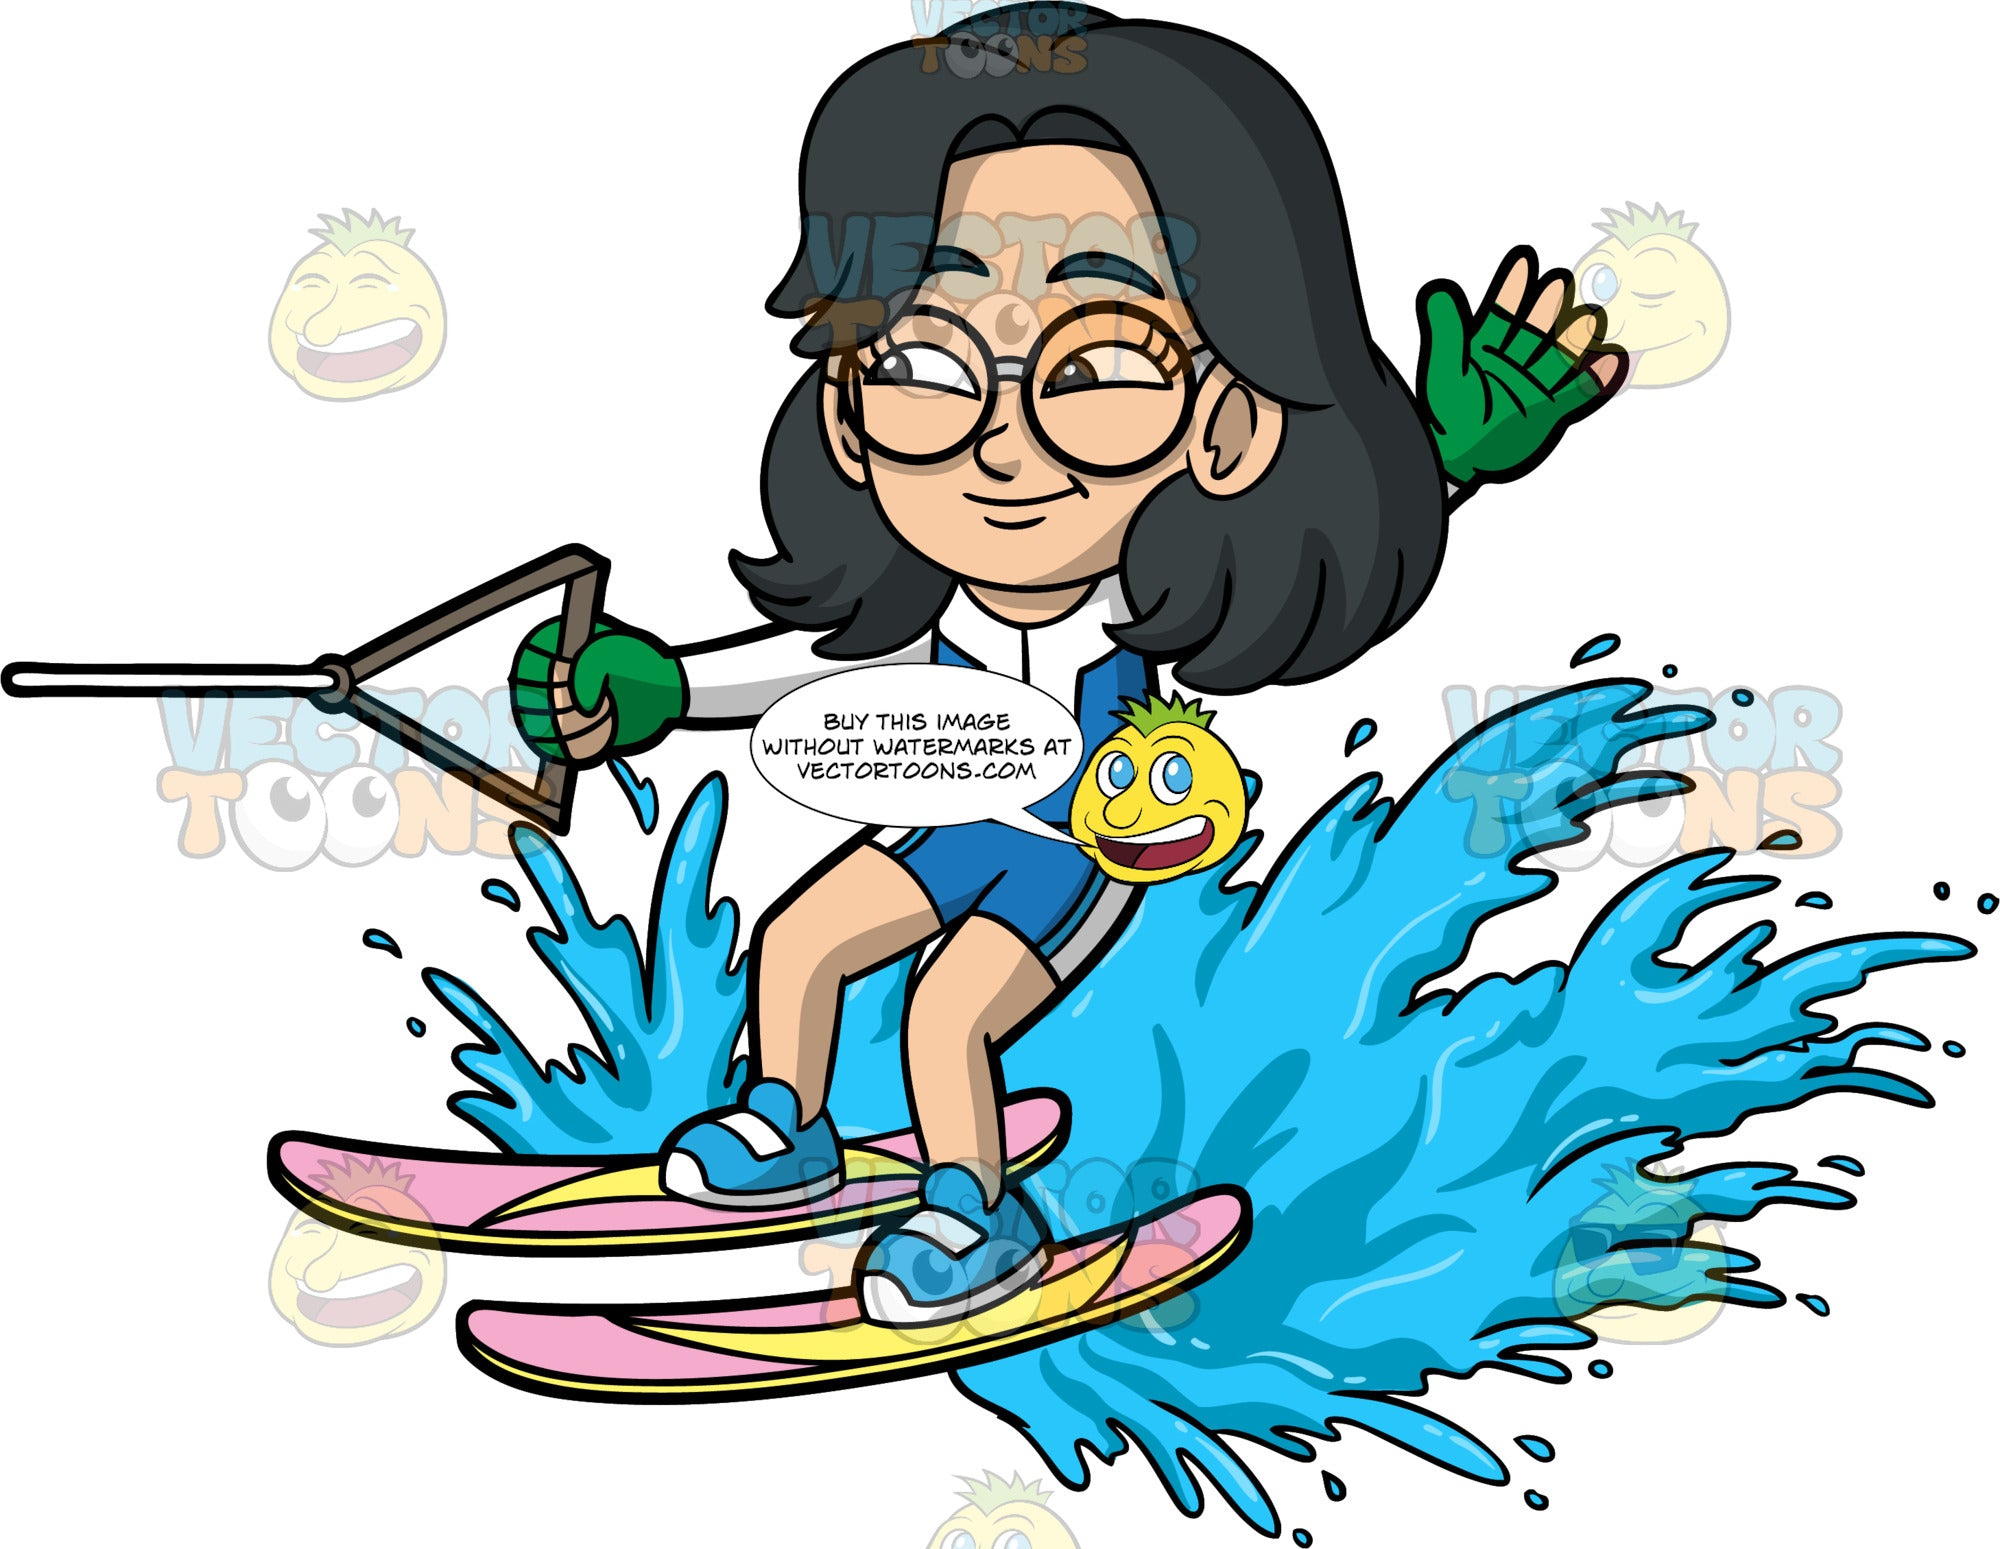 Young Lynn Water Skiing. A young Asian girl wearing a blue and white wet suit, and round eyeglasses, holding onto a handle with one hand as she is pulled behind a boat on water skis